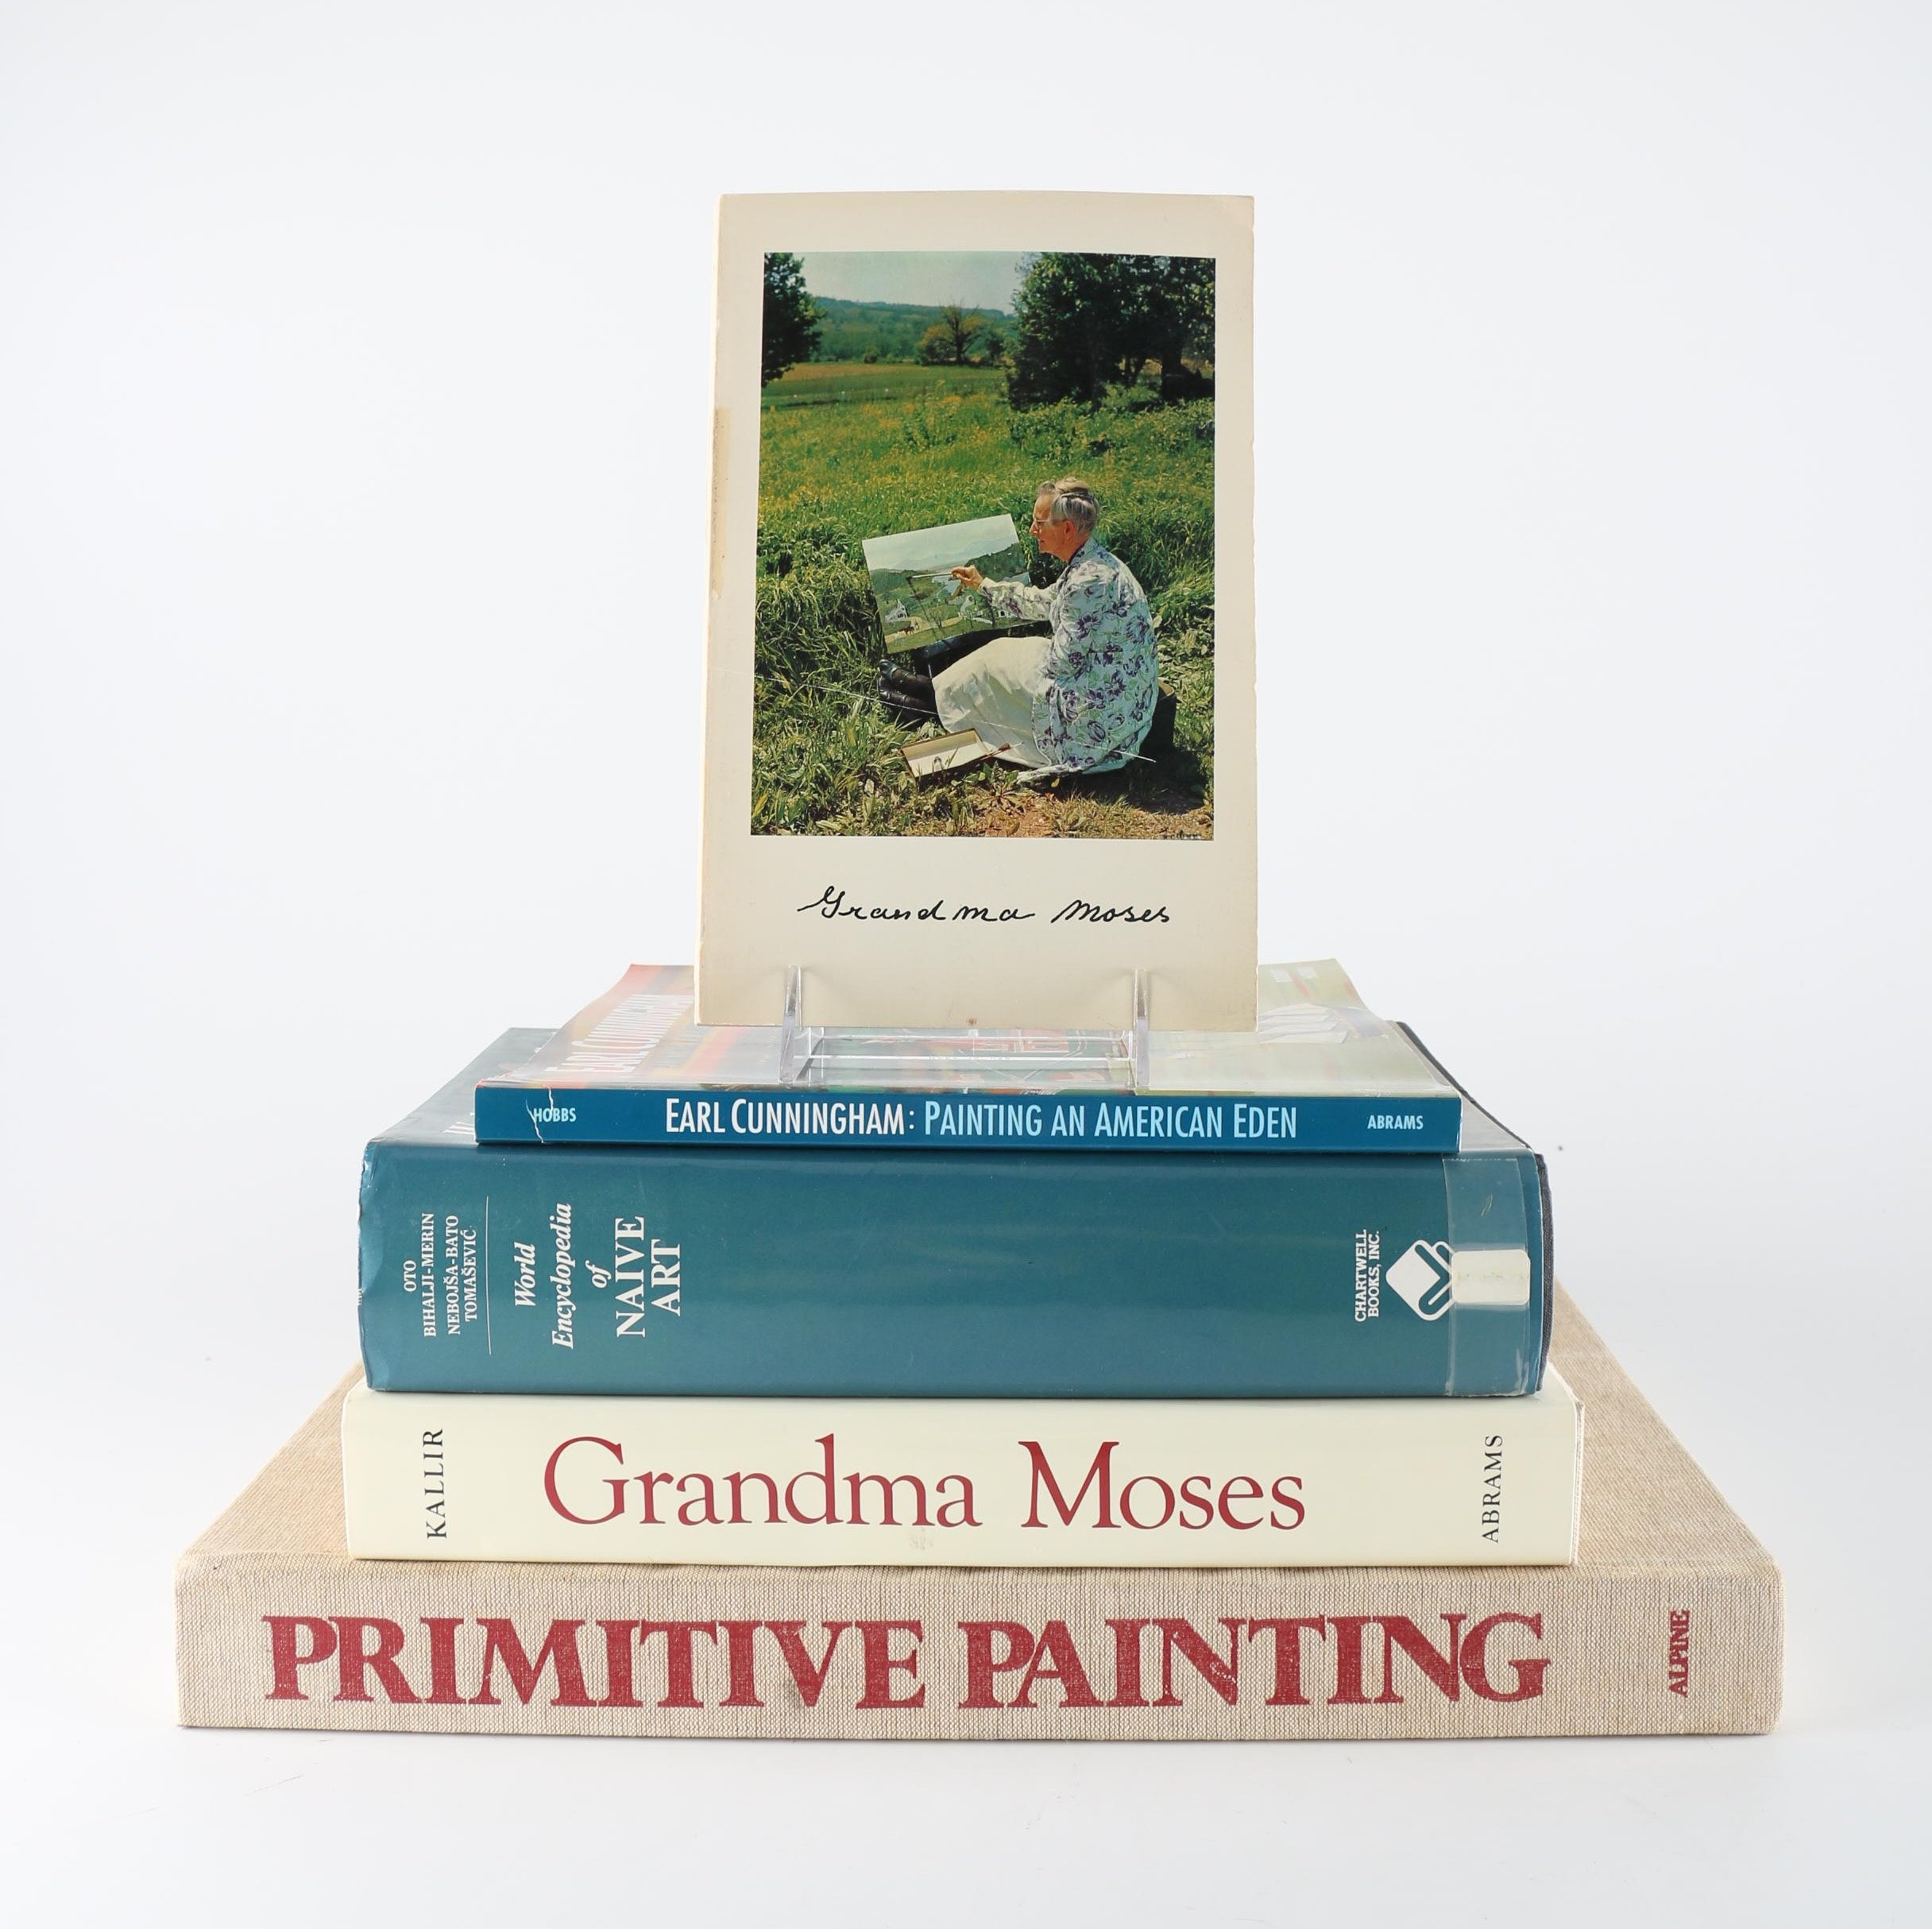 Folk Art Books Featuring Grandma Moses and Earl Cunningham